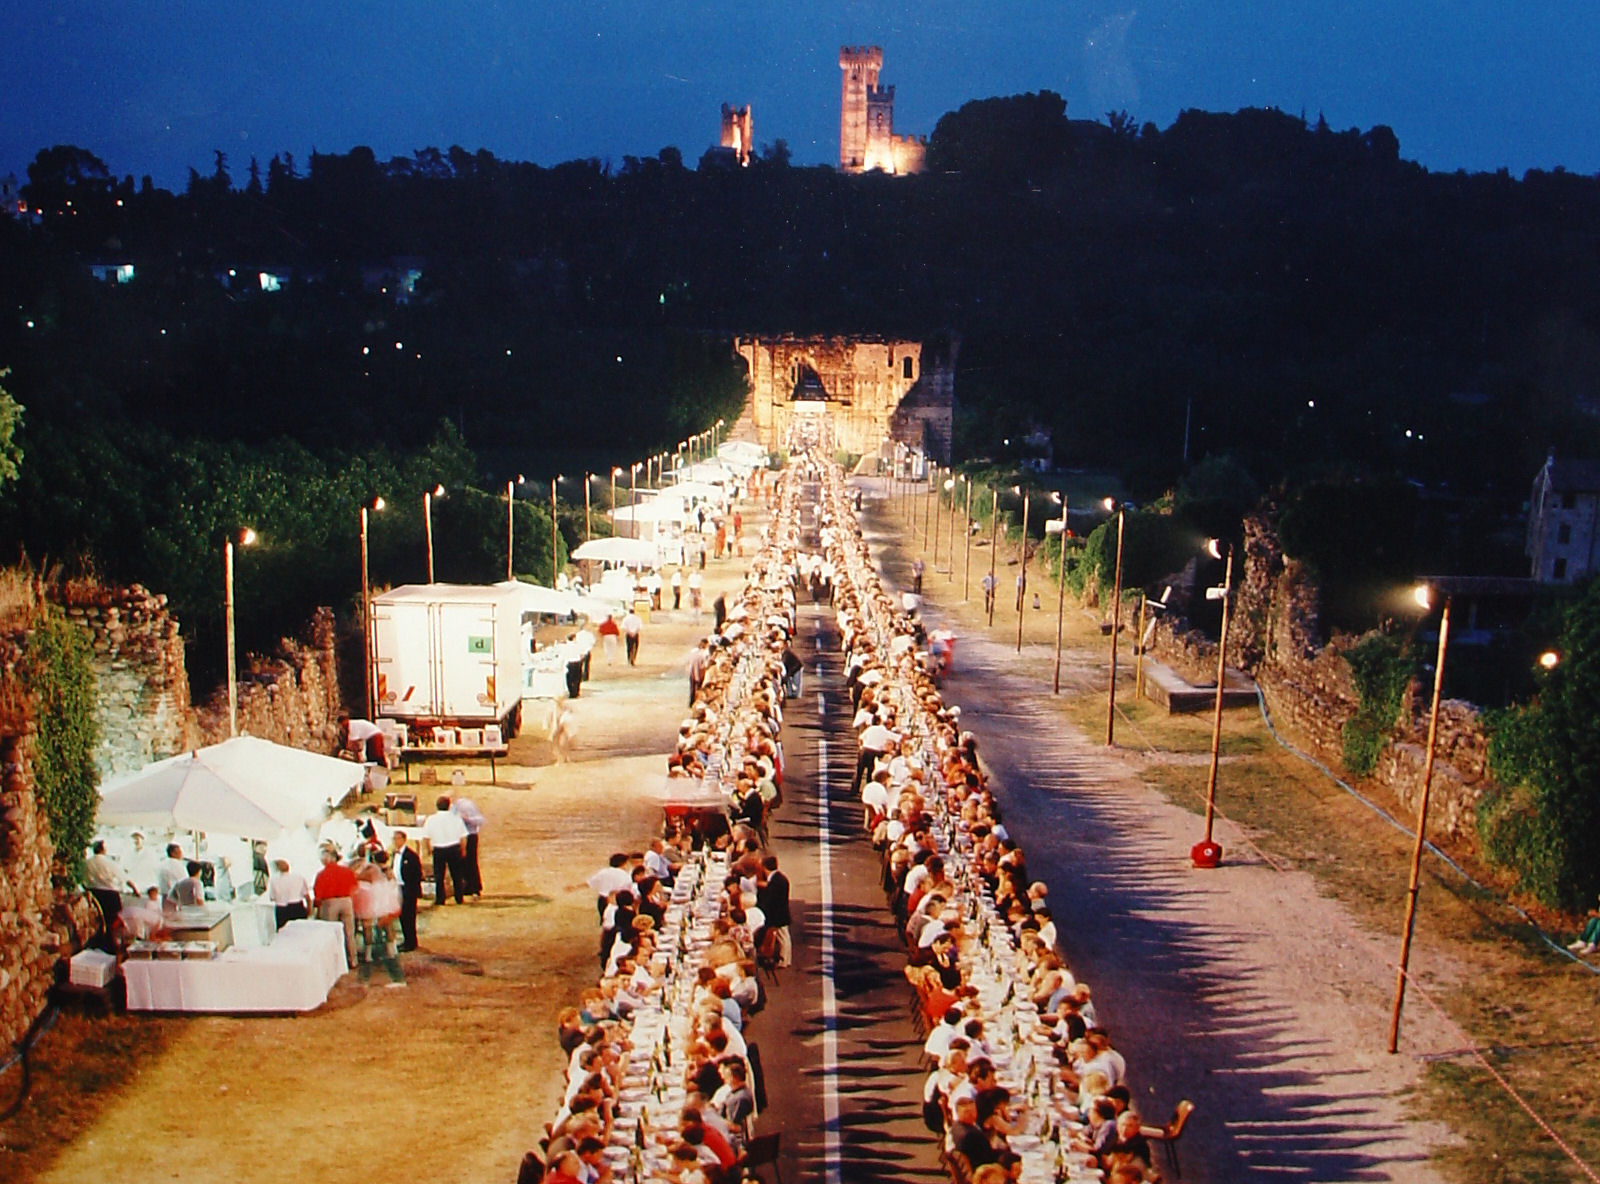 Every third Tuesday in June, the Visconti Bridge hosts 4,000 hungry diners at the Festa del Nodo d'Amore. Photo taken of framed picture hanging in the Ristorante Alla Borsa.